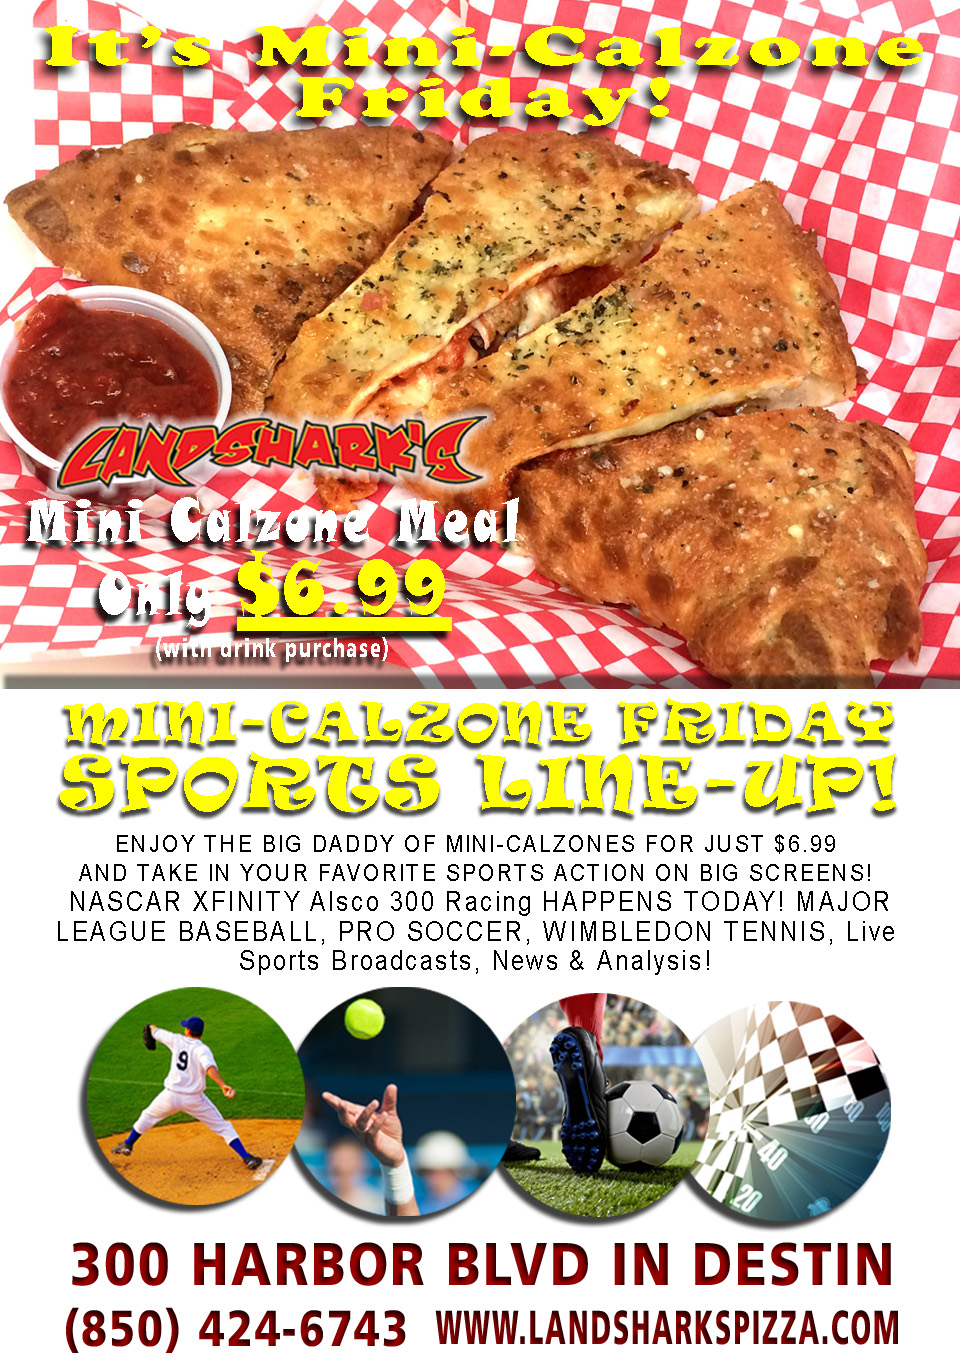 Award-Winning Calzone Destin FL Landsharks Pizza Co